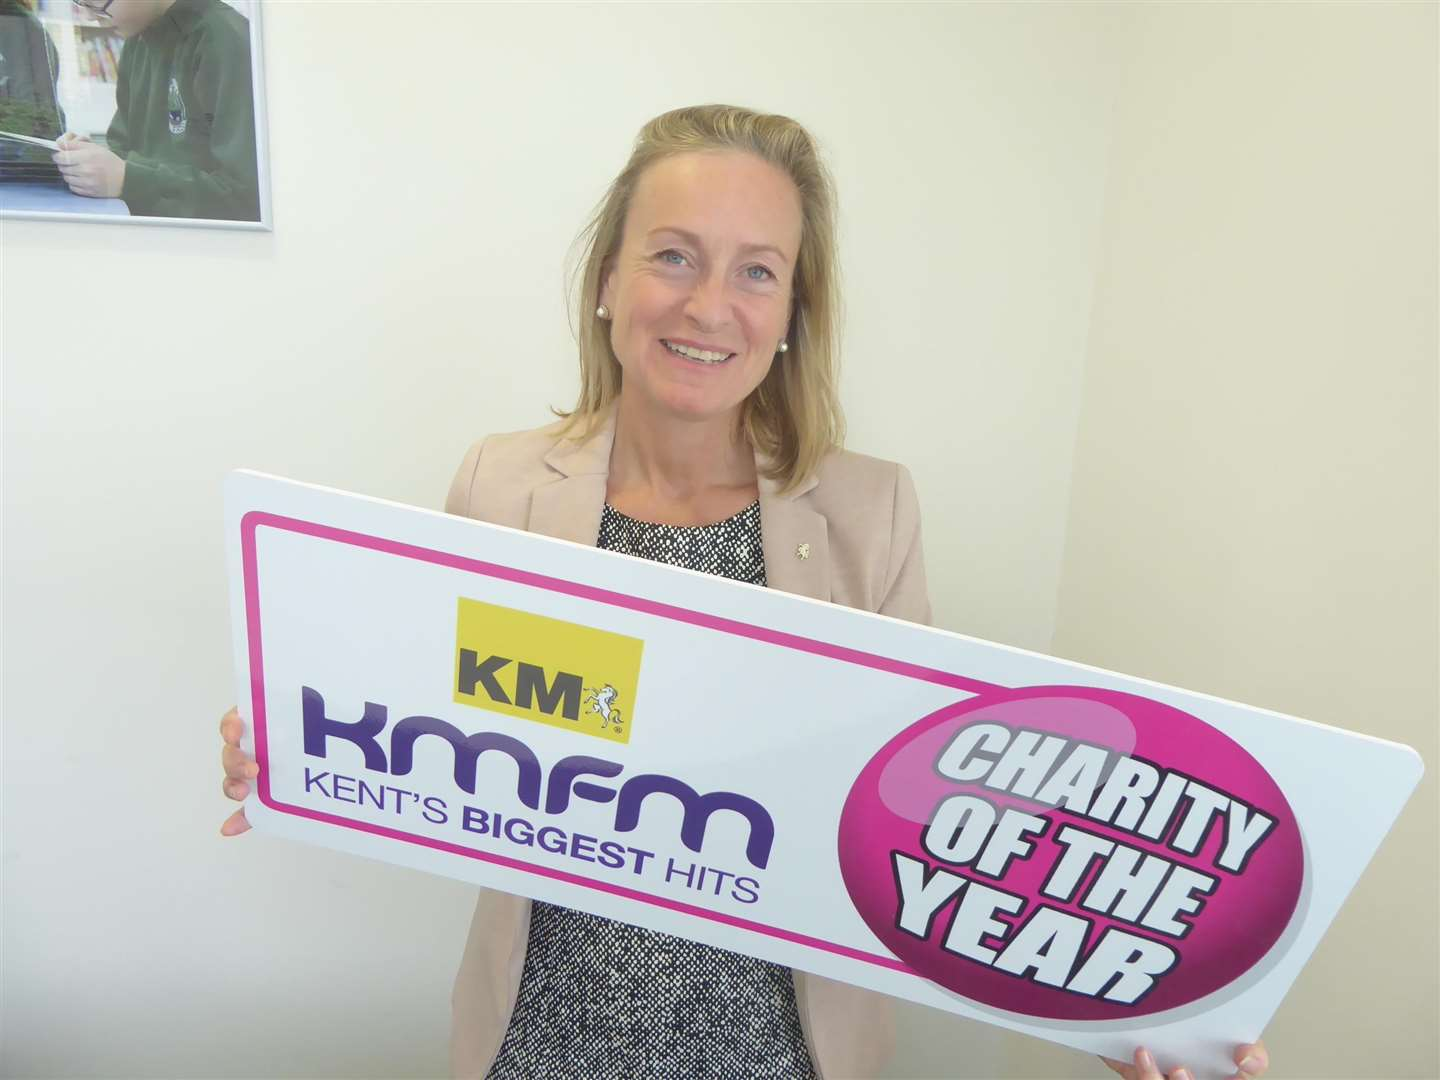 Chairman of the KM Group Geraldine Allinson urges charities to apply for KM Charity of the Year 2019. (3784309)